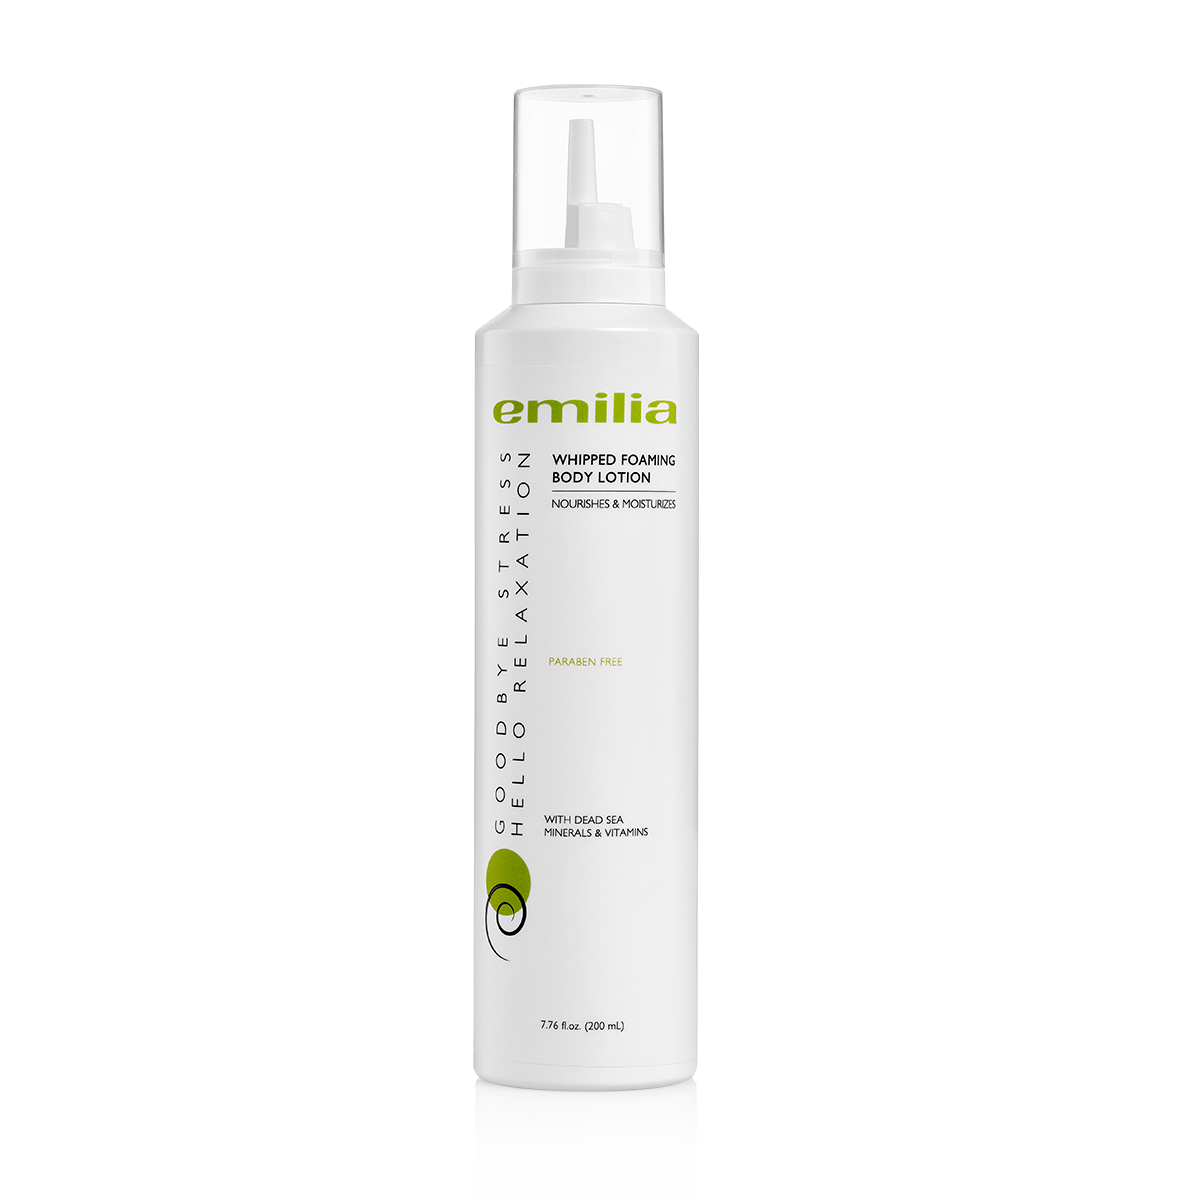 Whipped-Foaming-Body-Lotion